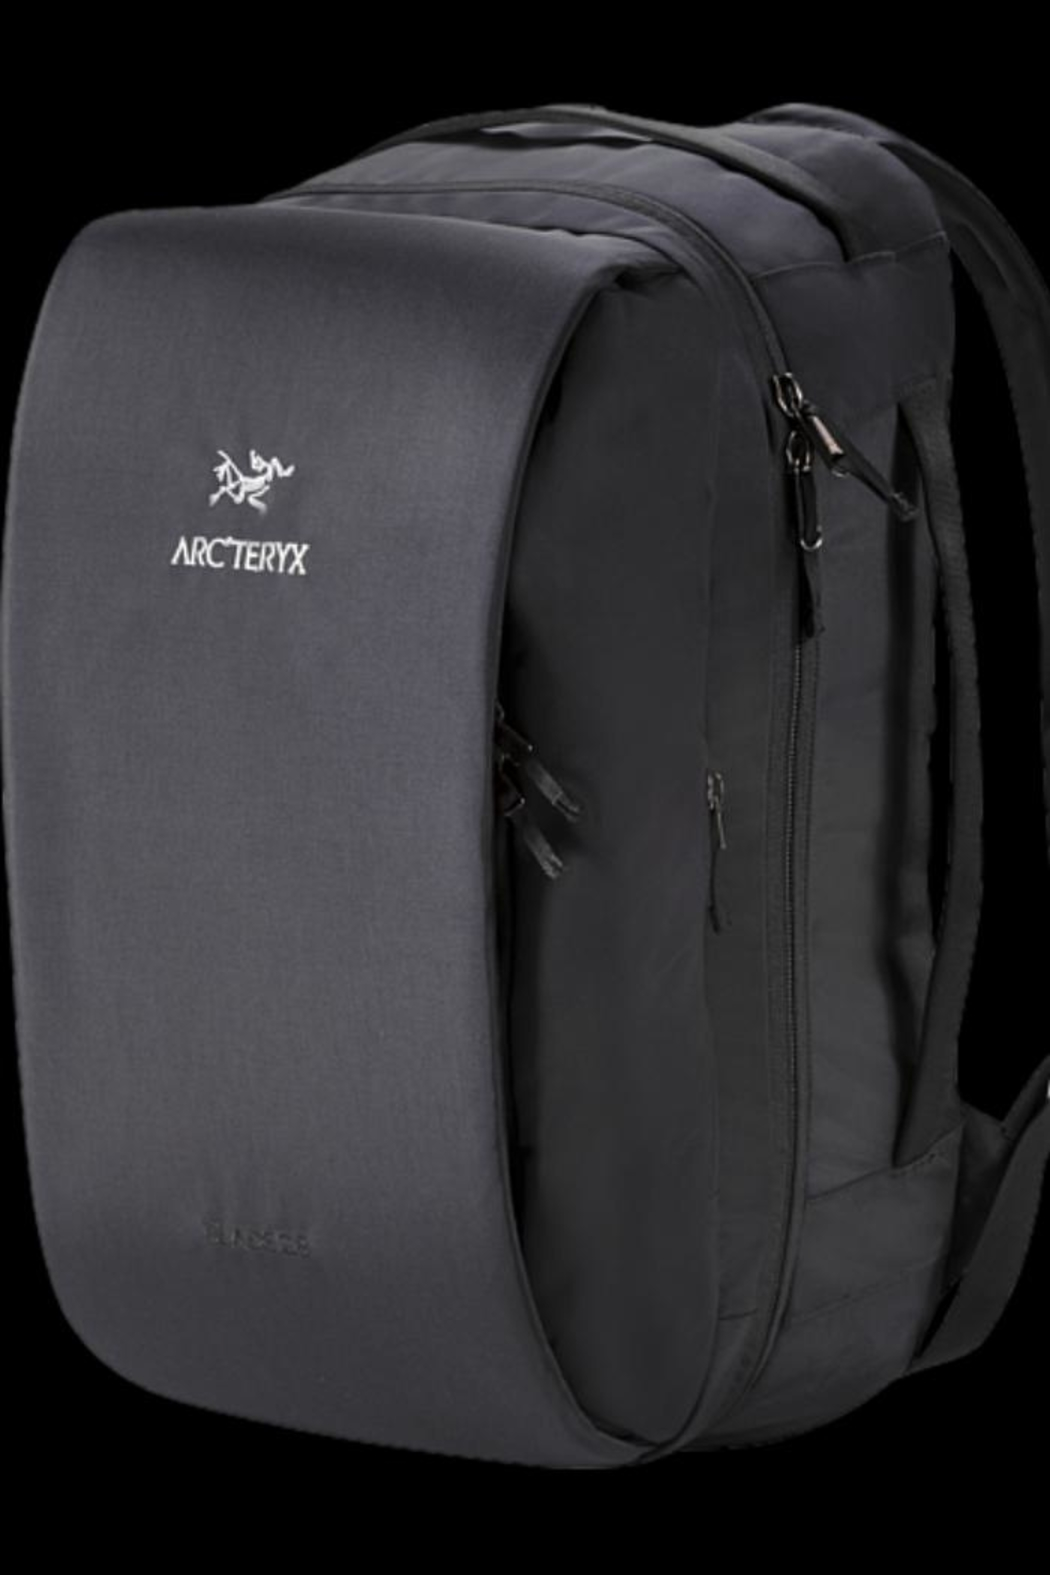 Arc'teryx Blade 28 Backpack - Main Image